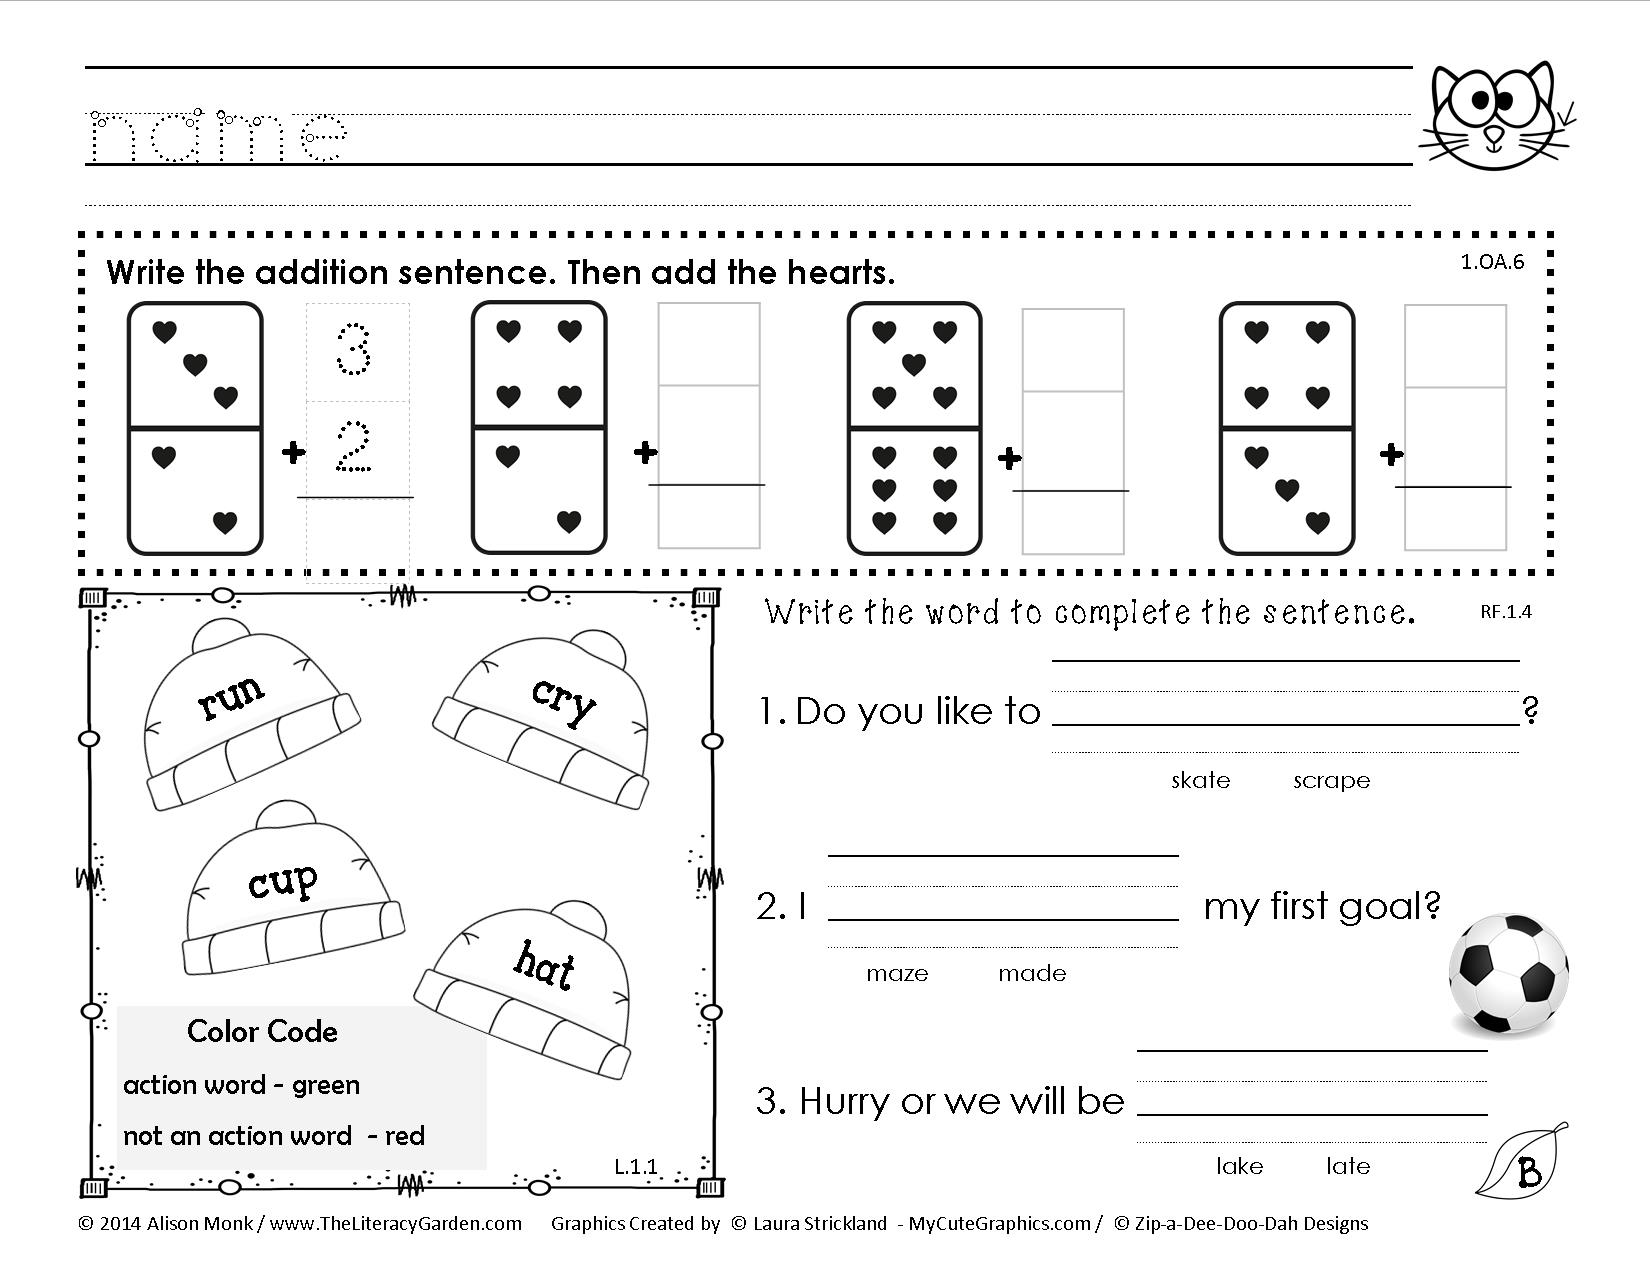 Worksheet Work For First Graders worksheet work for 1st graders mikyu free mcgraw hill wonders first grade resources and printouts unit three week one weekly outline for